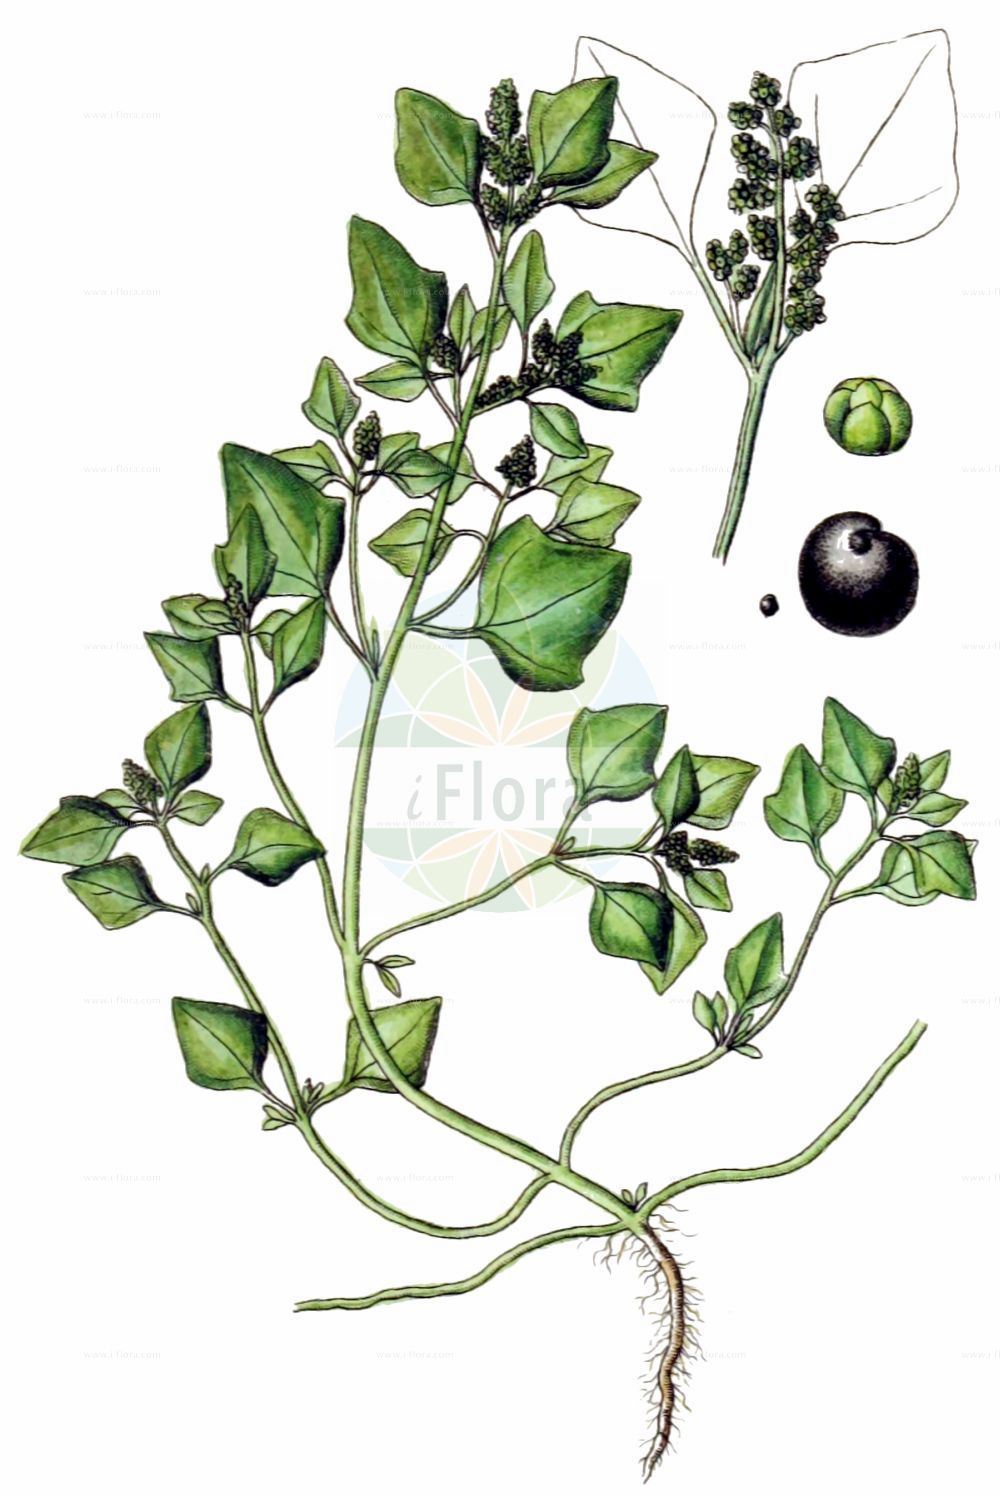 Historische Abbildung von Chenopodium vulvaria (Stinkender Gaensefuss - Stinking Goosefoot). Das Bild zeigt Blatt, Bluete, Frucht und Same. ---- Historical Drawing of Chenopodium vulvaria (Stinkender Gaensefuss - Stinking Goosefoot).The image is showing leaf, flower, fruit and seed.(Chenopodium vulvaria,Stinkender Gaensefuss,Stinking Goosefoot,Chenopodium foetidum,Chenopodium olidum,Chenopodium vulvaria,Stinkender Gaensefuss,Stinking Goosefoot,Chenopodium,Gaensefuss,Goosefoot,Amaranthaceae,Fuchsschwanzgewaechse,Pigweed family,Blatt,Bluete,Frucht,Same,leaf,flower,fruit,seed,Sturm (1796f))